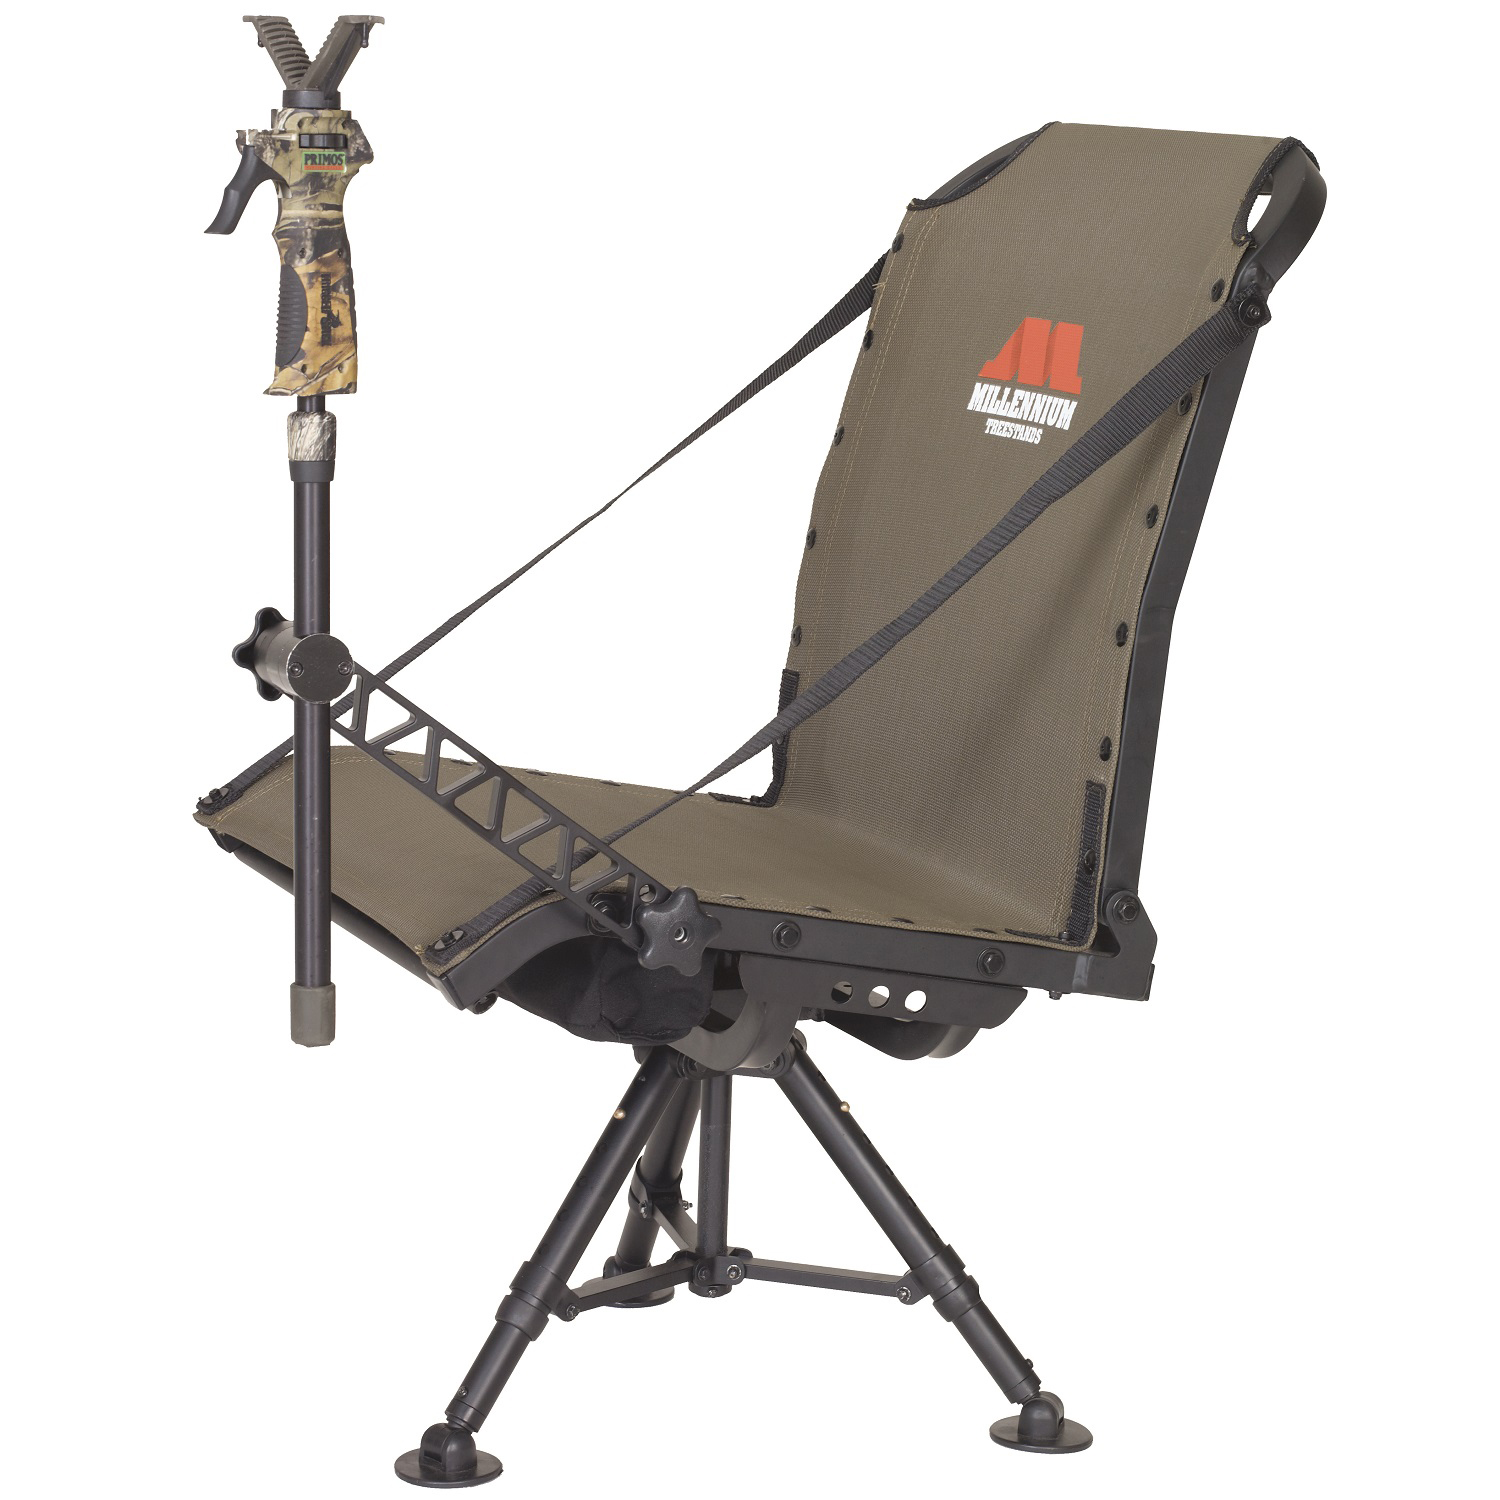 Blind Chair Millennium Treestands Blind Chair Shooting Mount